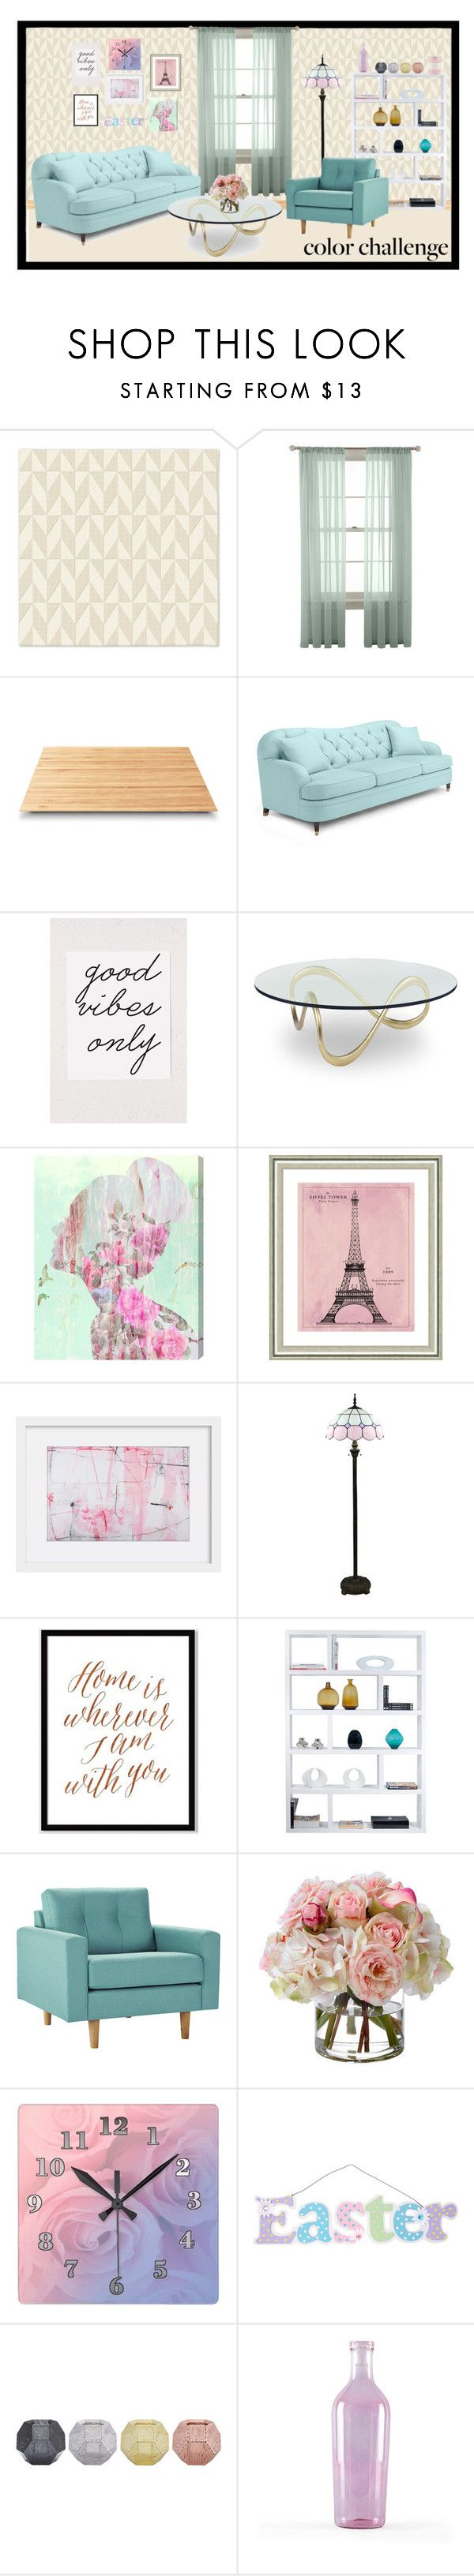 """Pastel Colour"" by danaisnawati on Polyvore featuring interior, interiors, interior design, home, home decor, interior decorating, West Elm, Martha Stewart, Suki Cheema and Kate Spade"